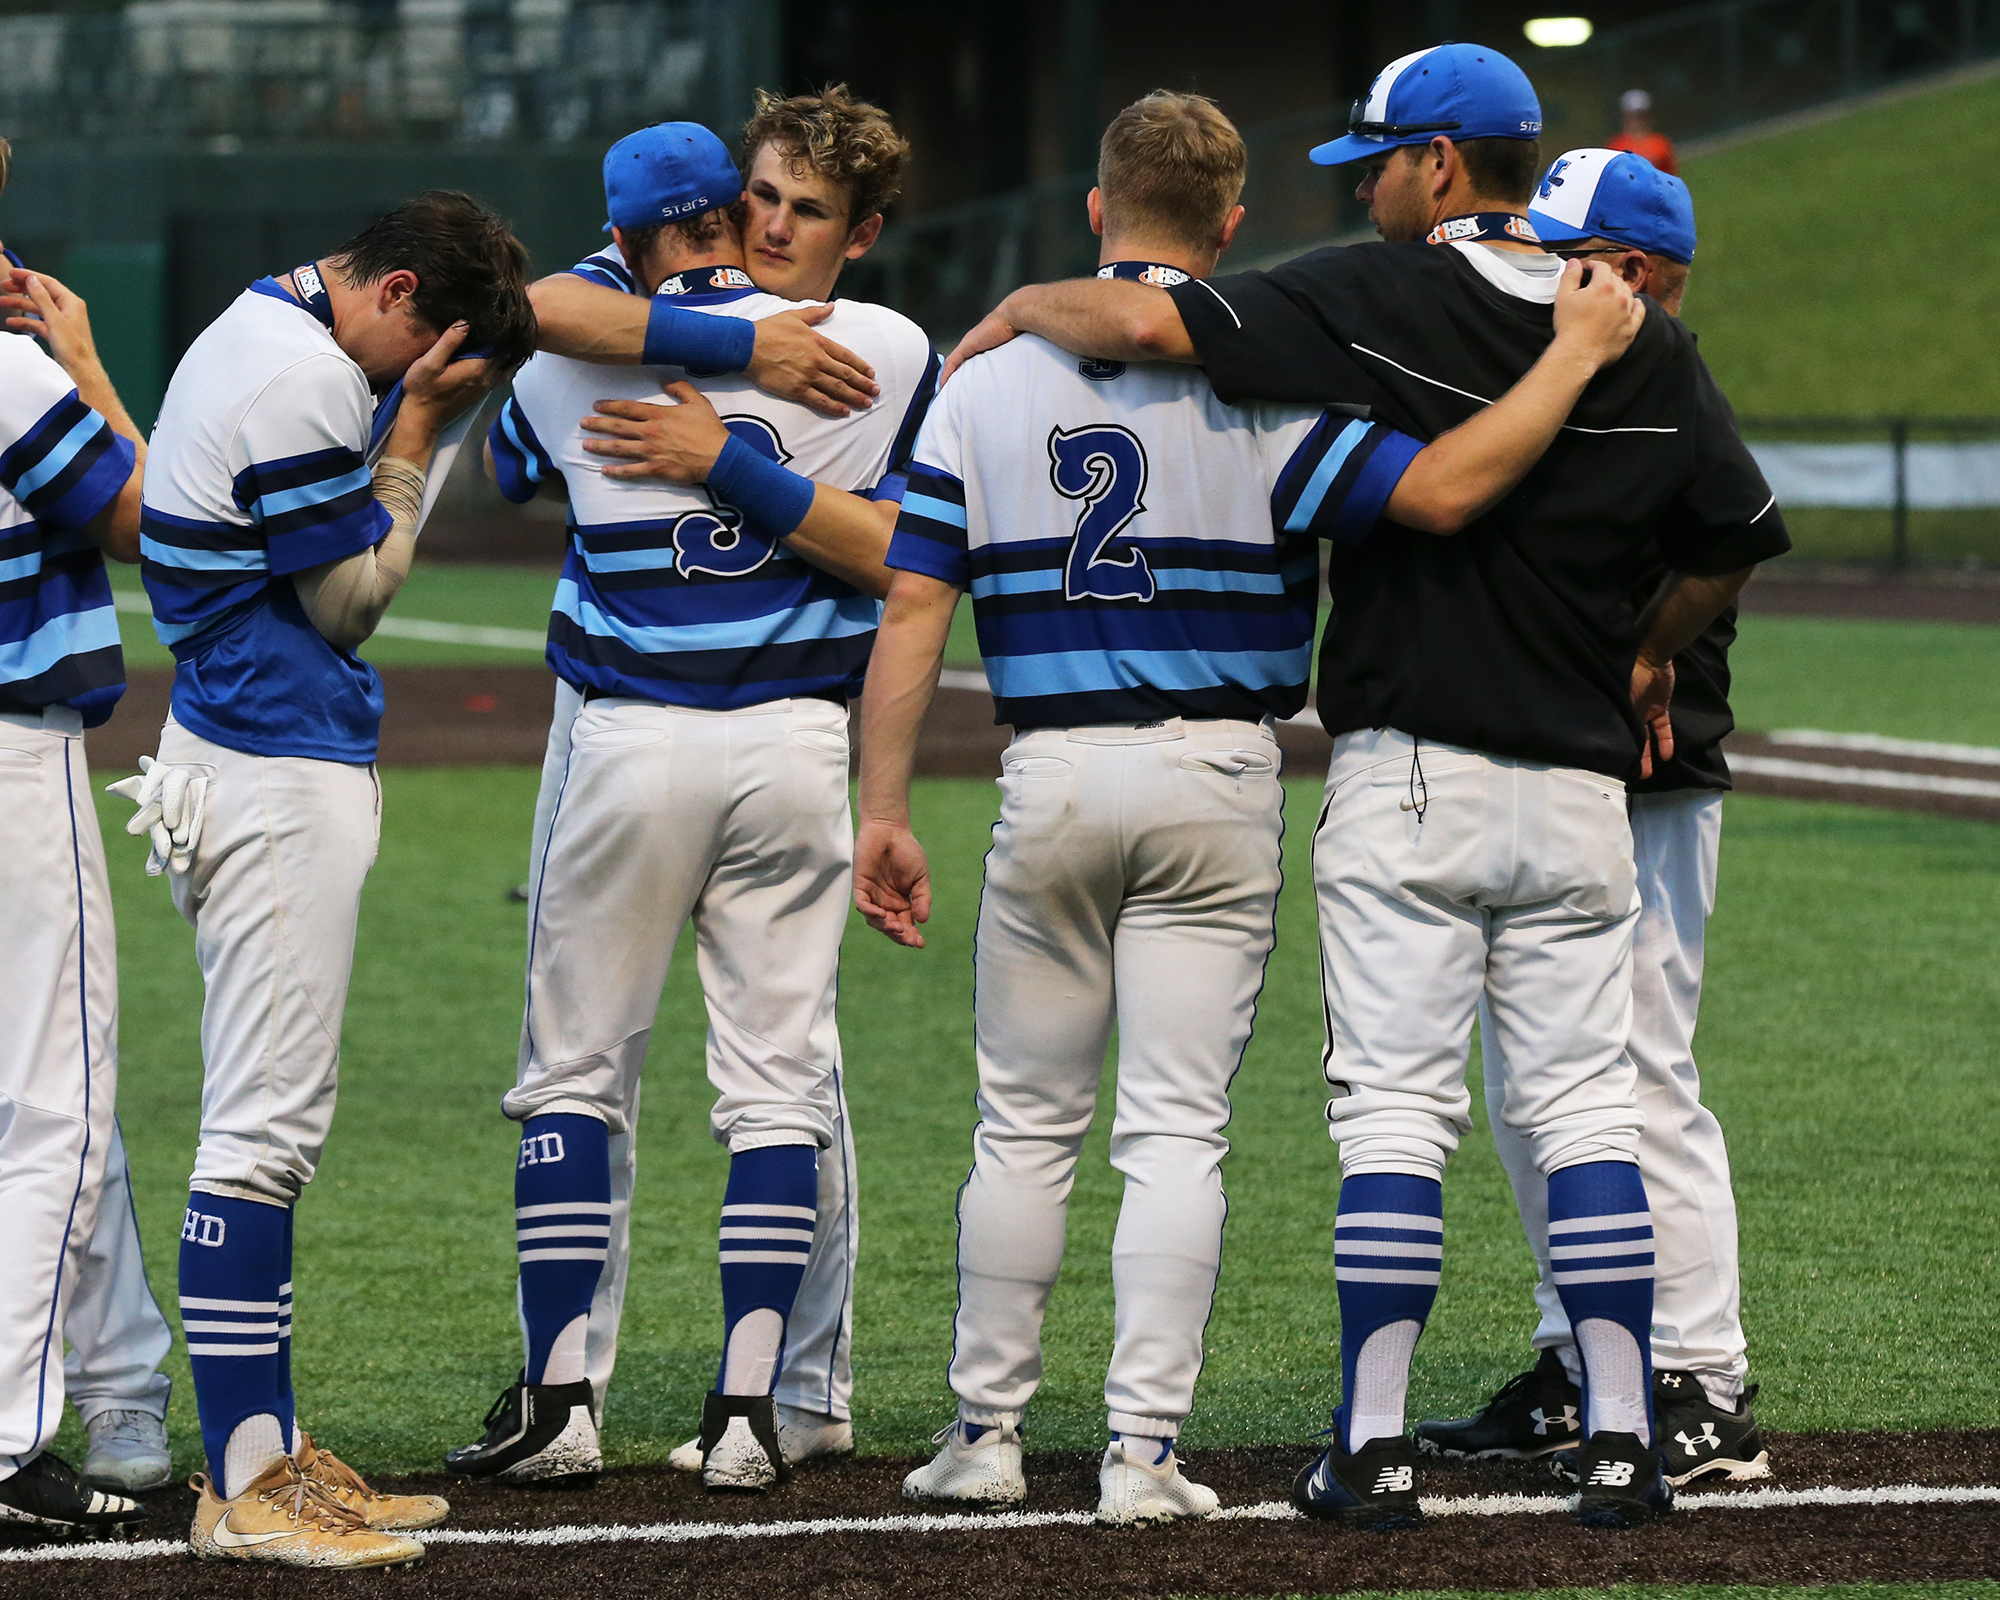 St. Charles North's players console each other after losing the 4A state championship game to Edwardsville.